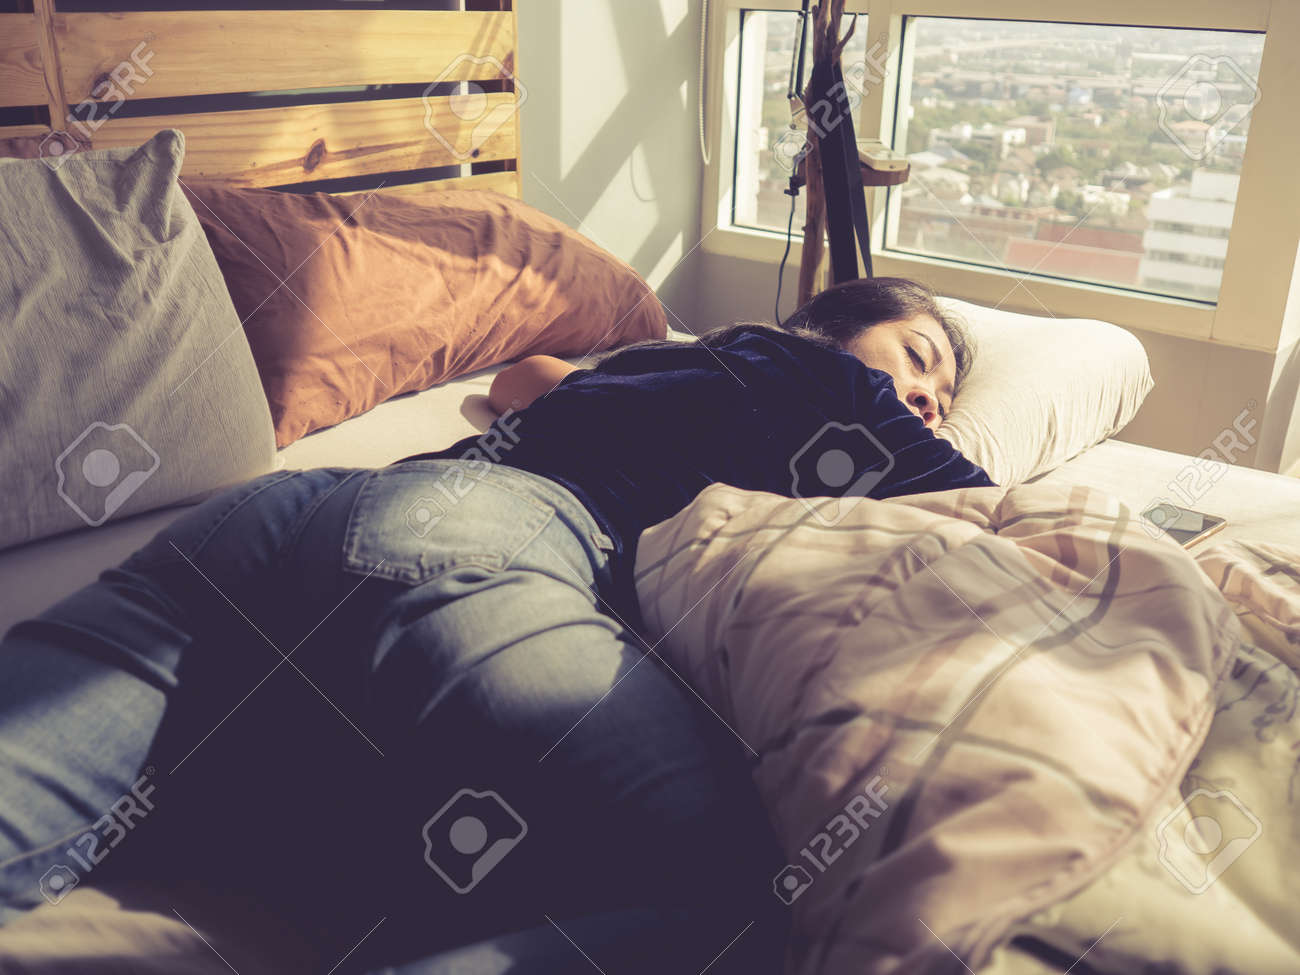 Asian woman sleep on bed in the afternoon. Funny sleeping pose. Stock Photo -